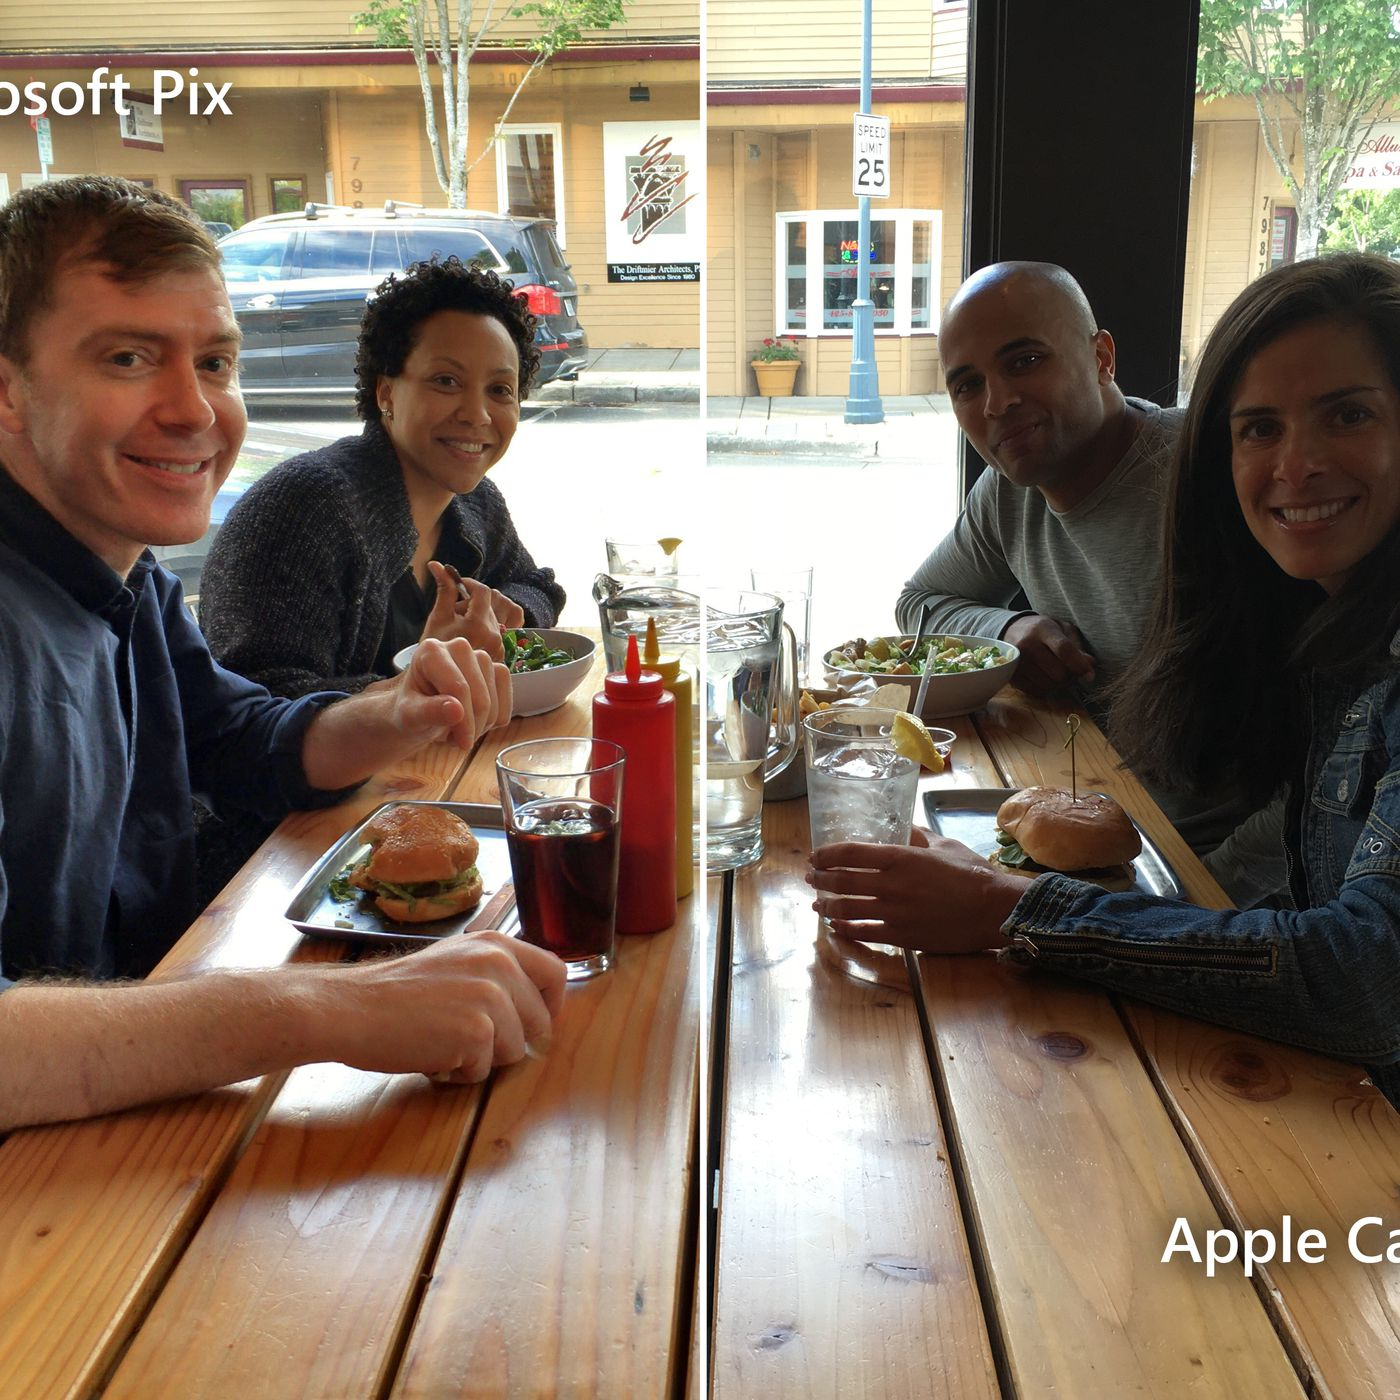 recode.net - Ina Fried - Microsoft thinks it can do a better iPhone camera app than Apple